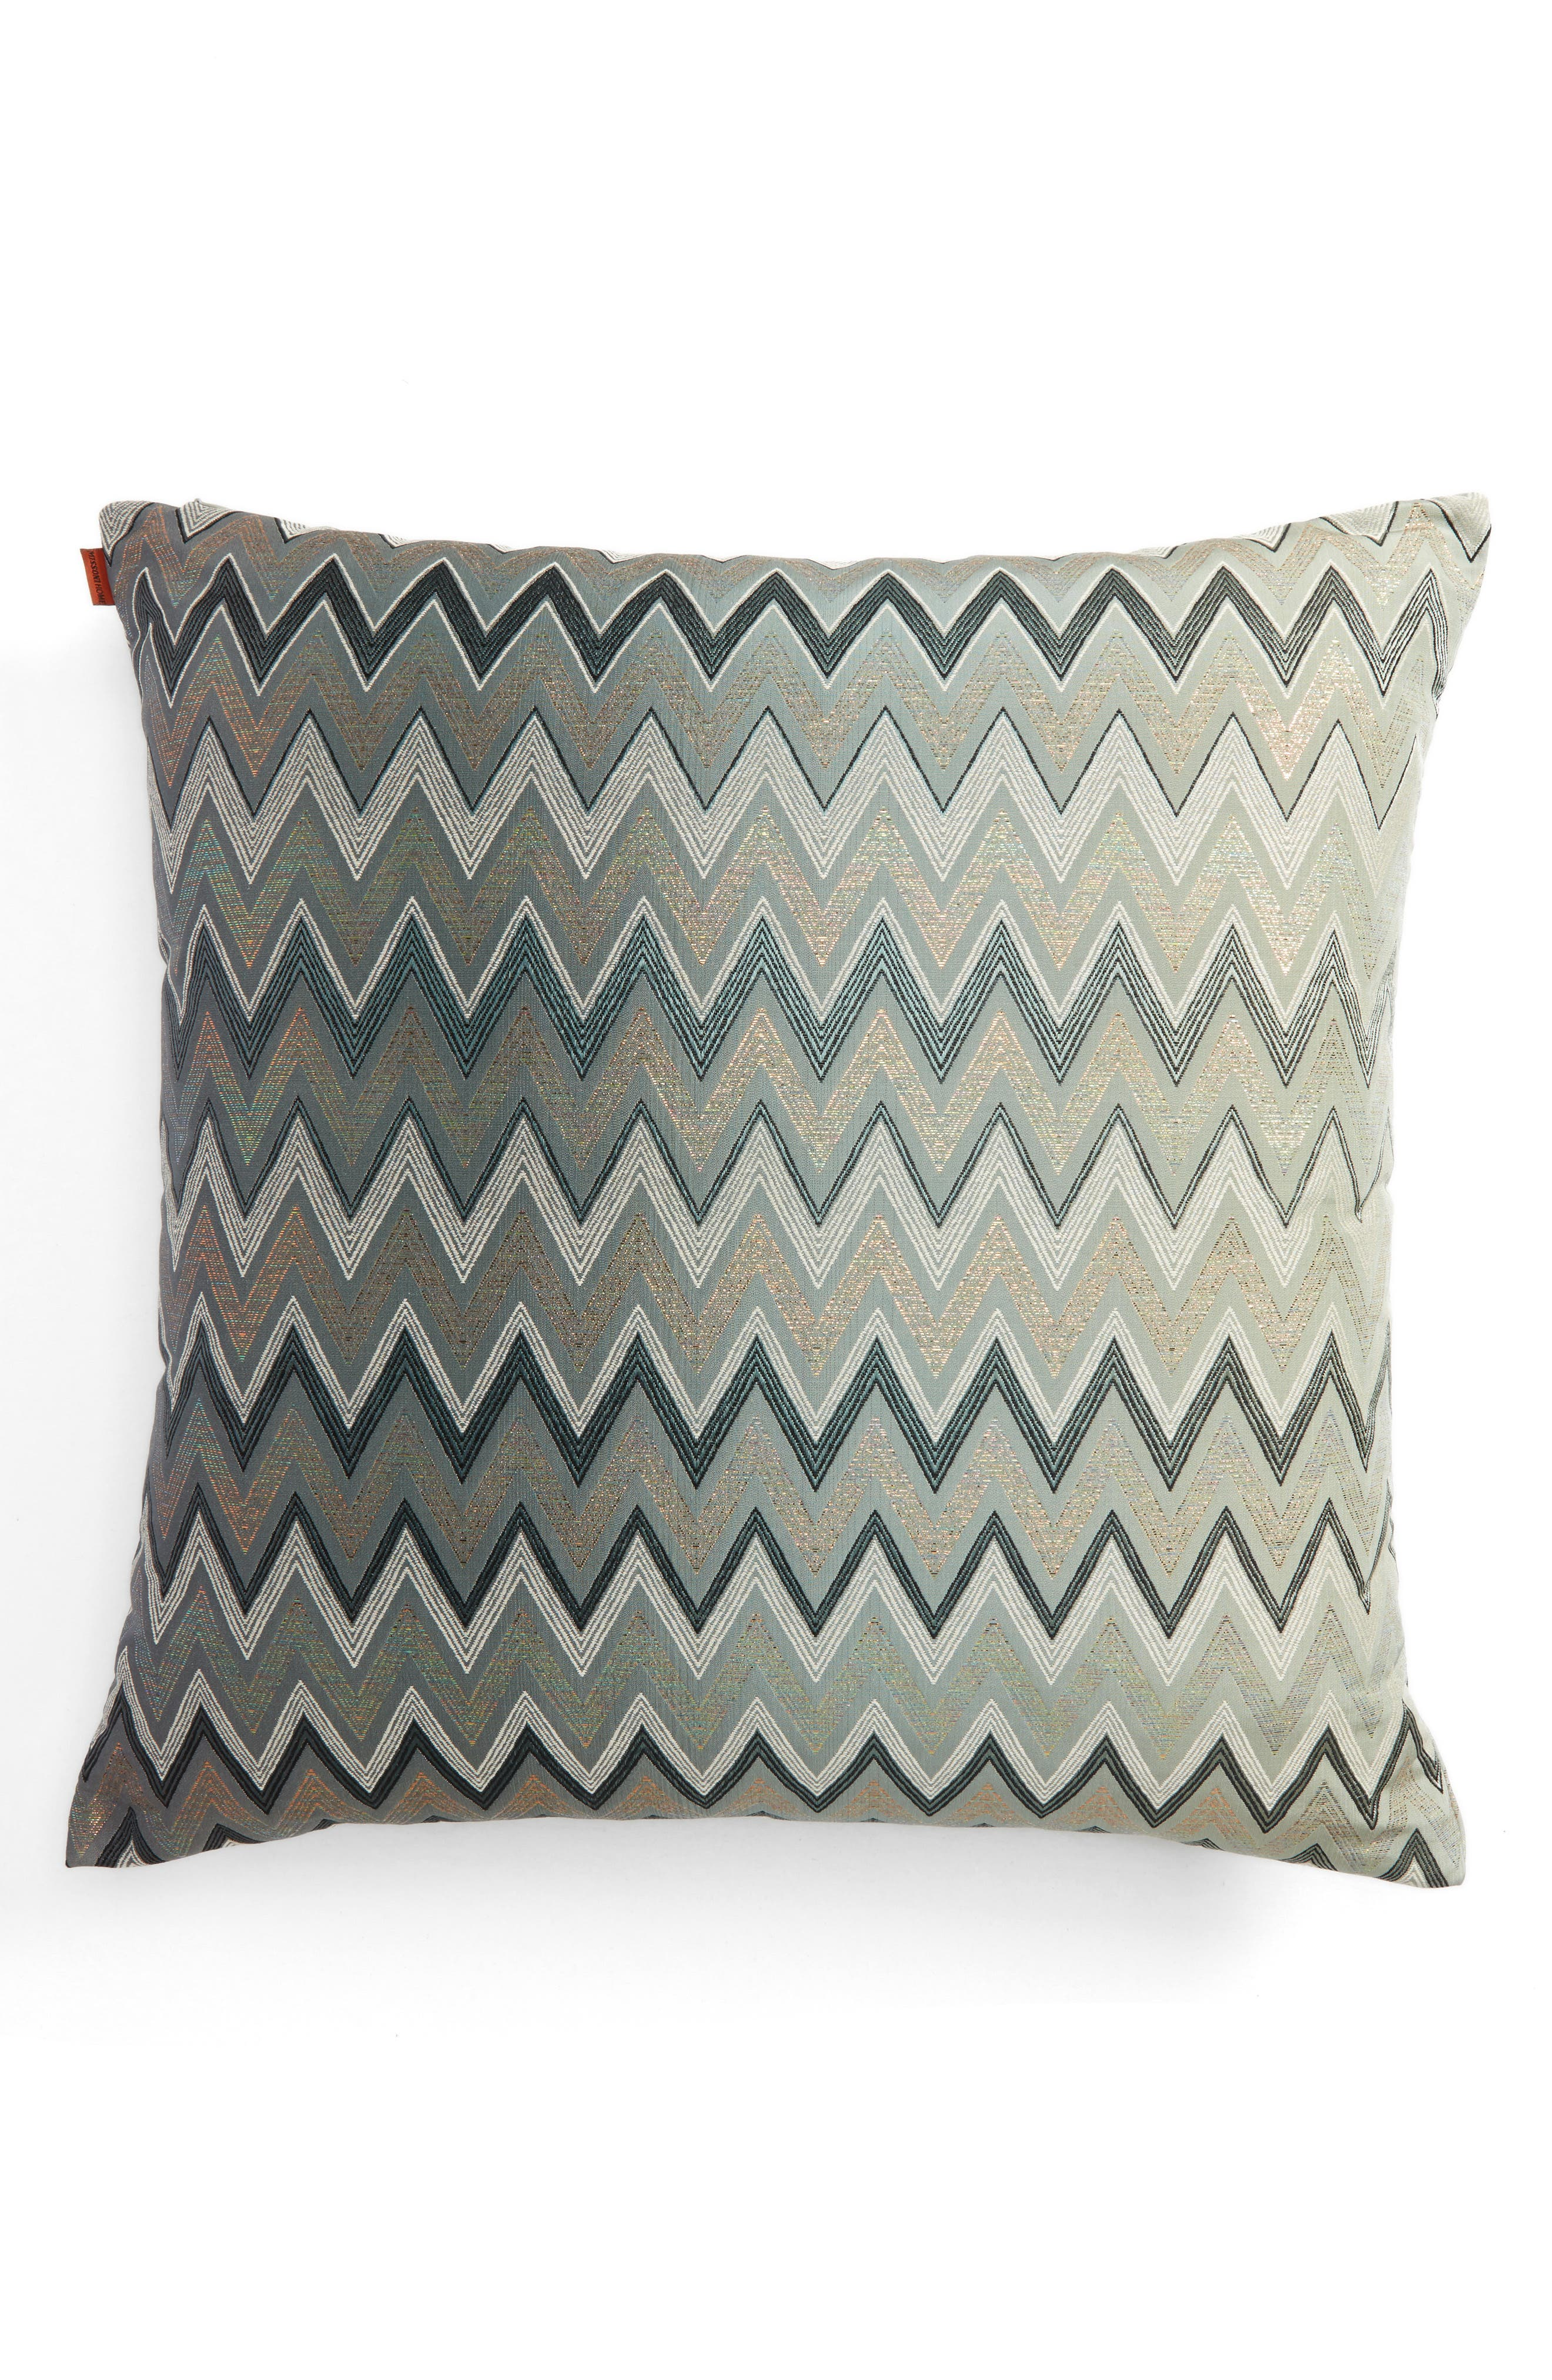 Taipei Accent Pillow,                         Main,                         color, MULTI BLUE